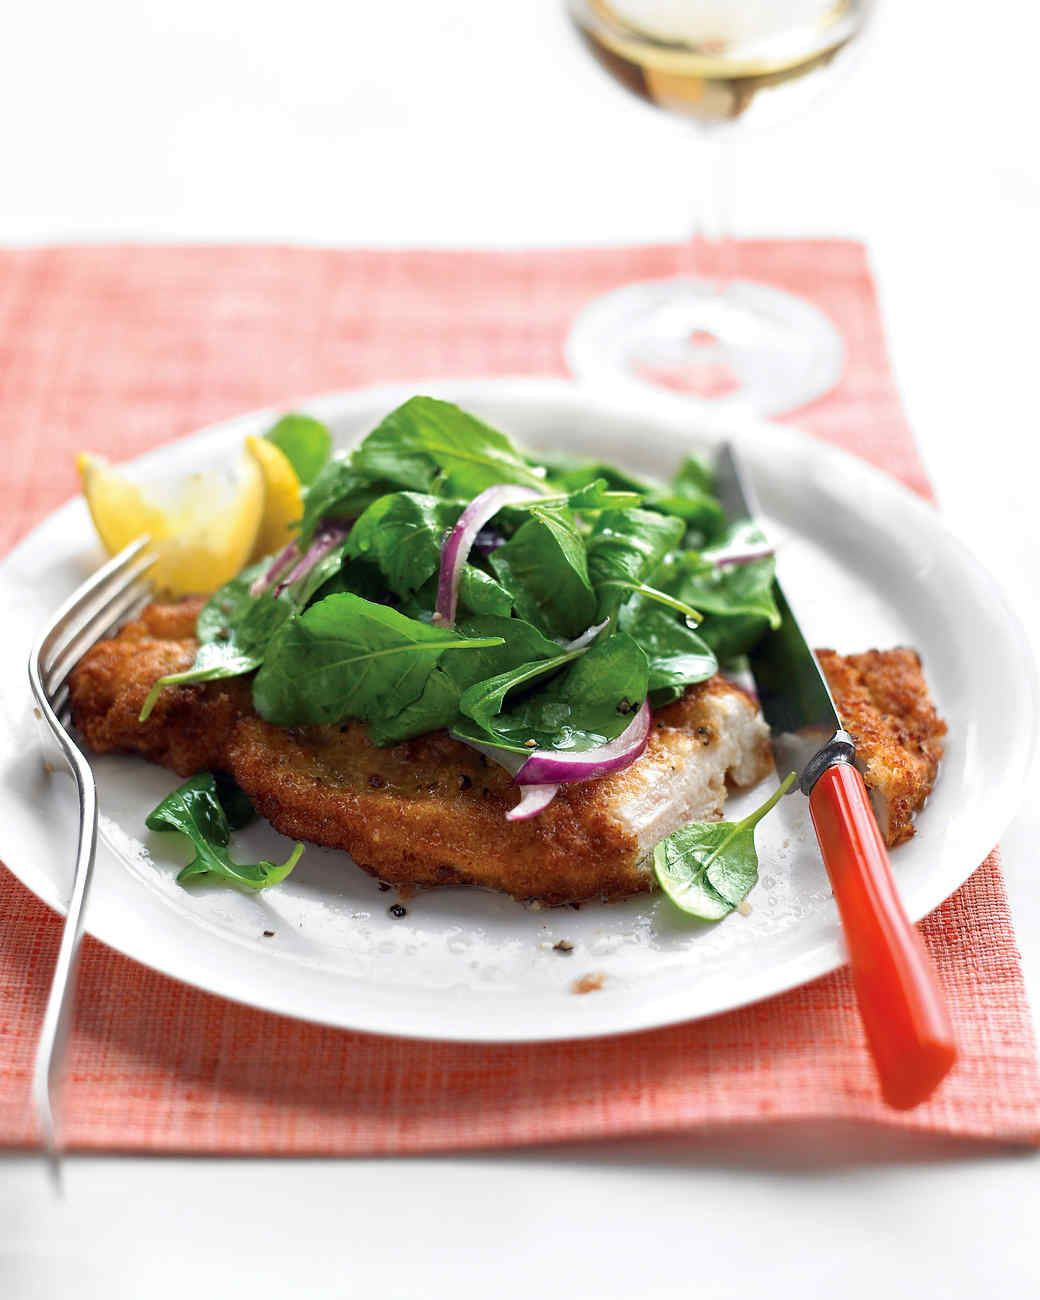 What is chicken milanese recipe